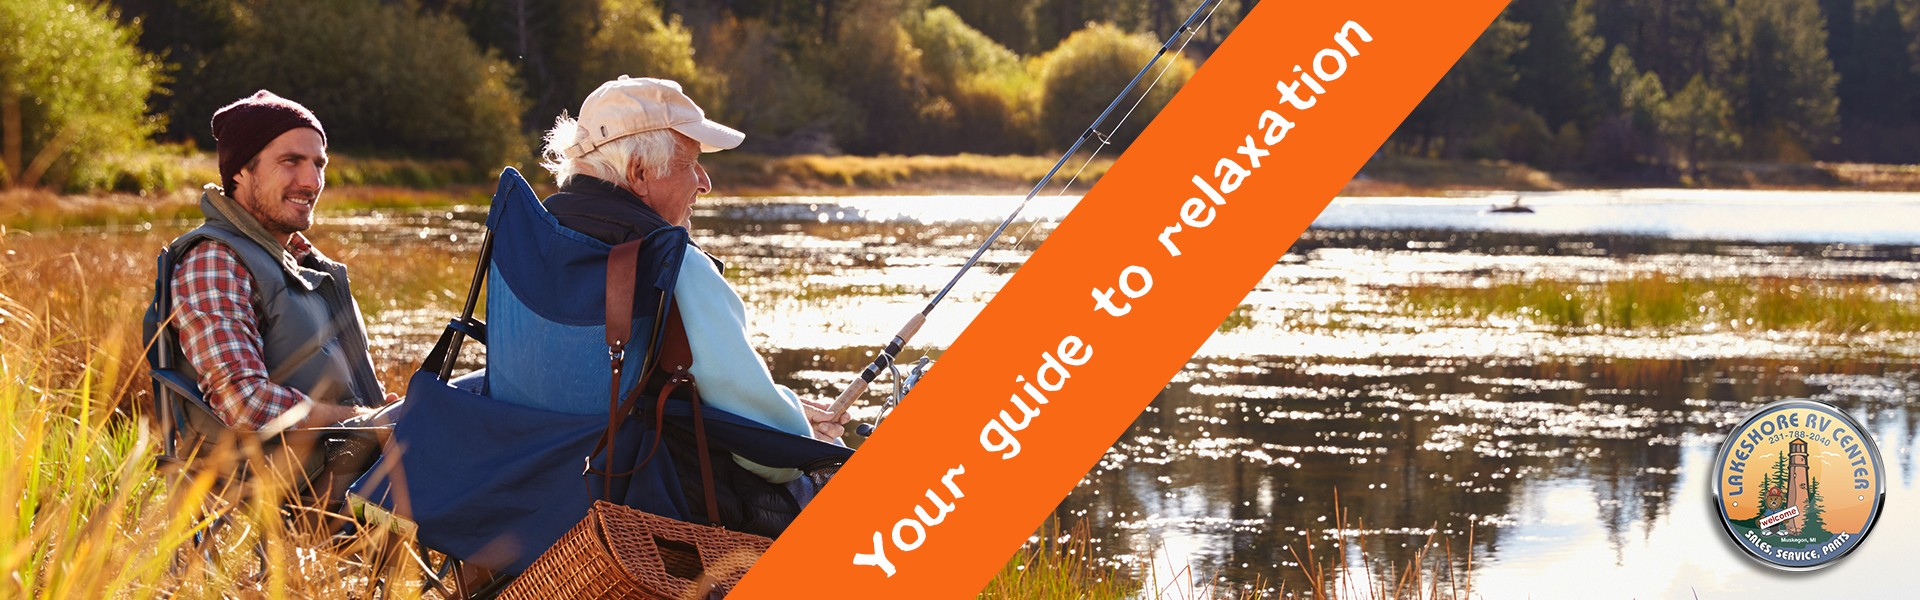 your-guide-to-relaxation-father-and-son-fishing-on-autumn-day